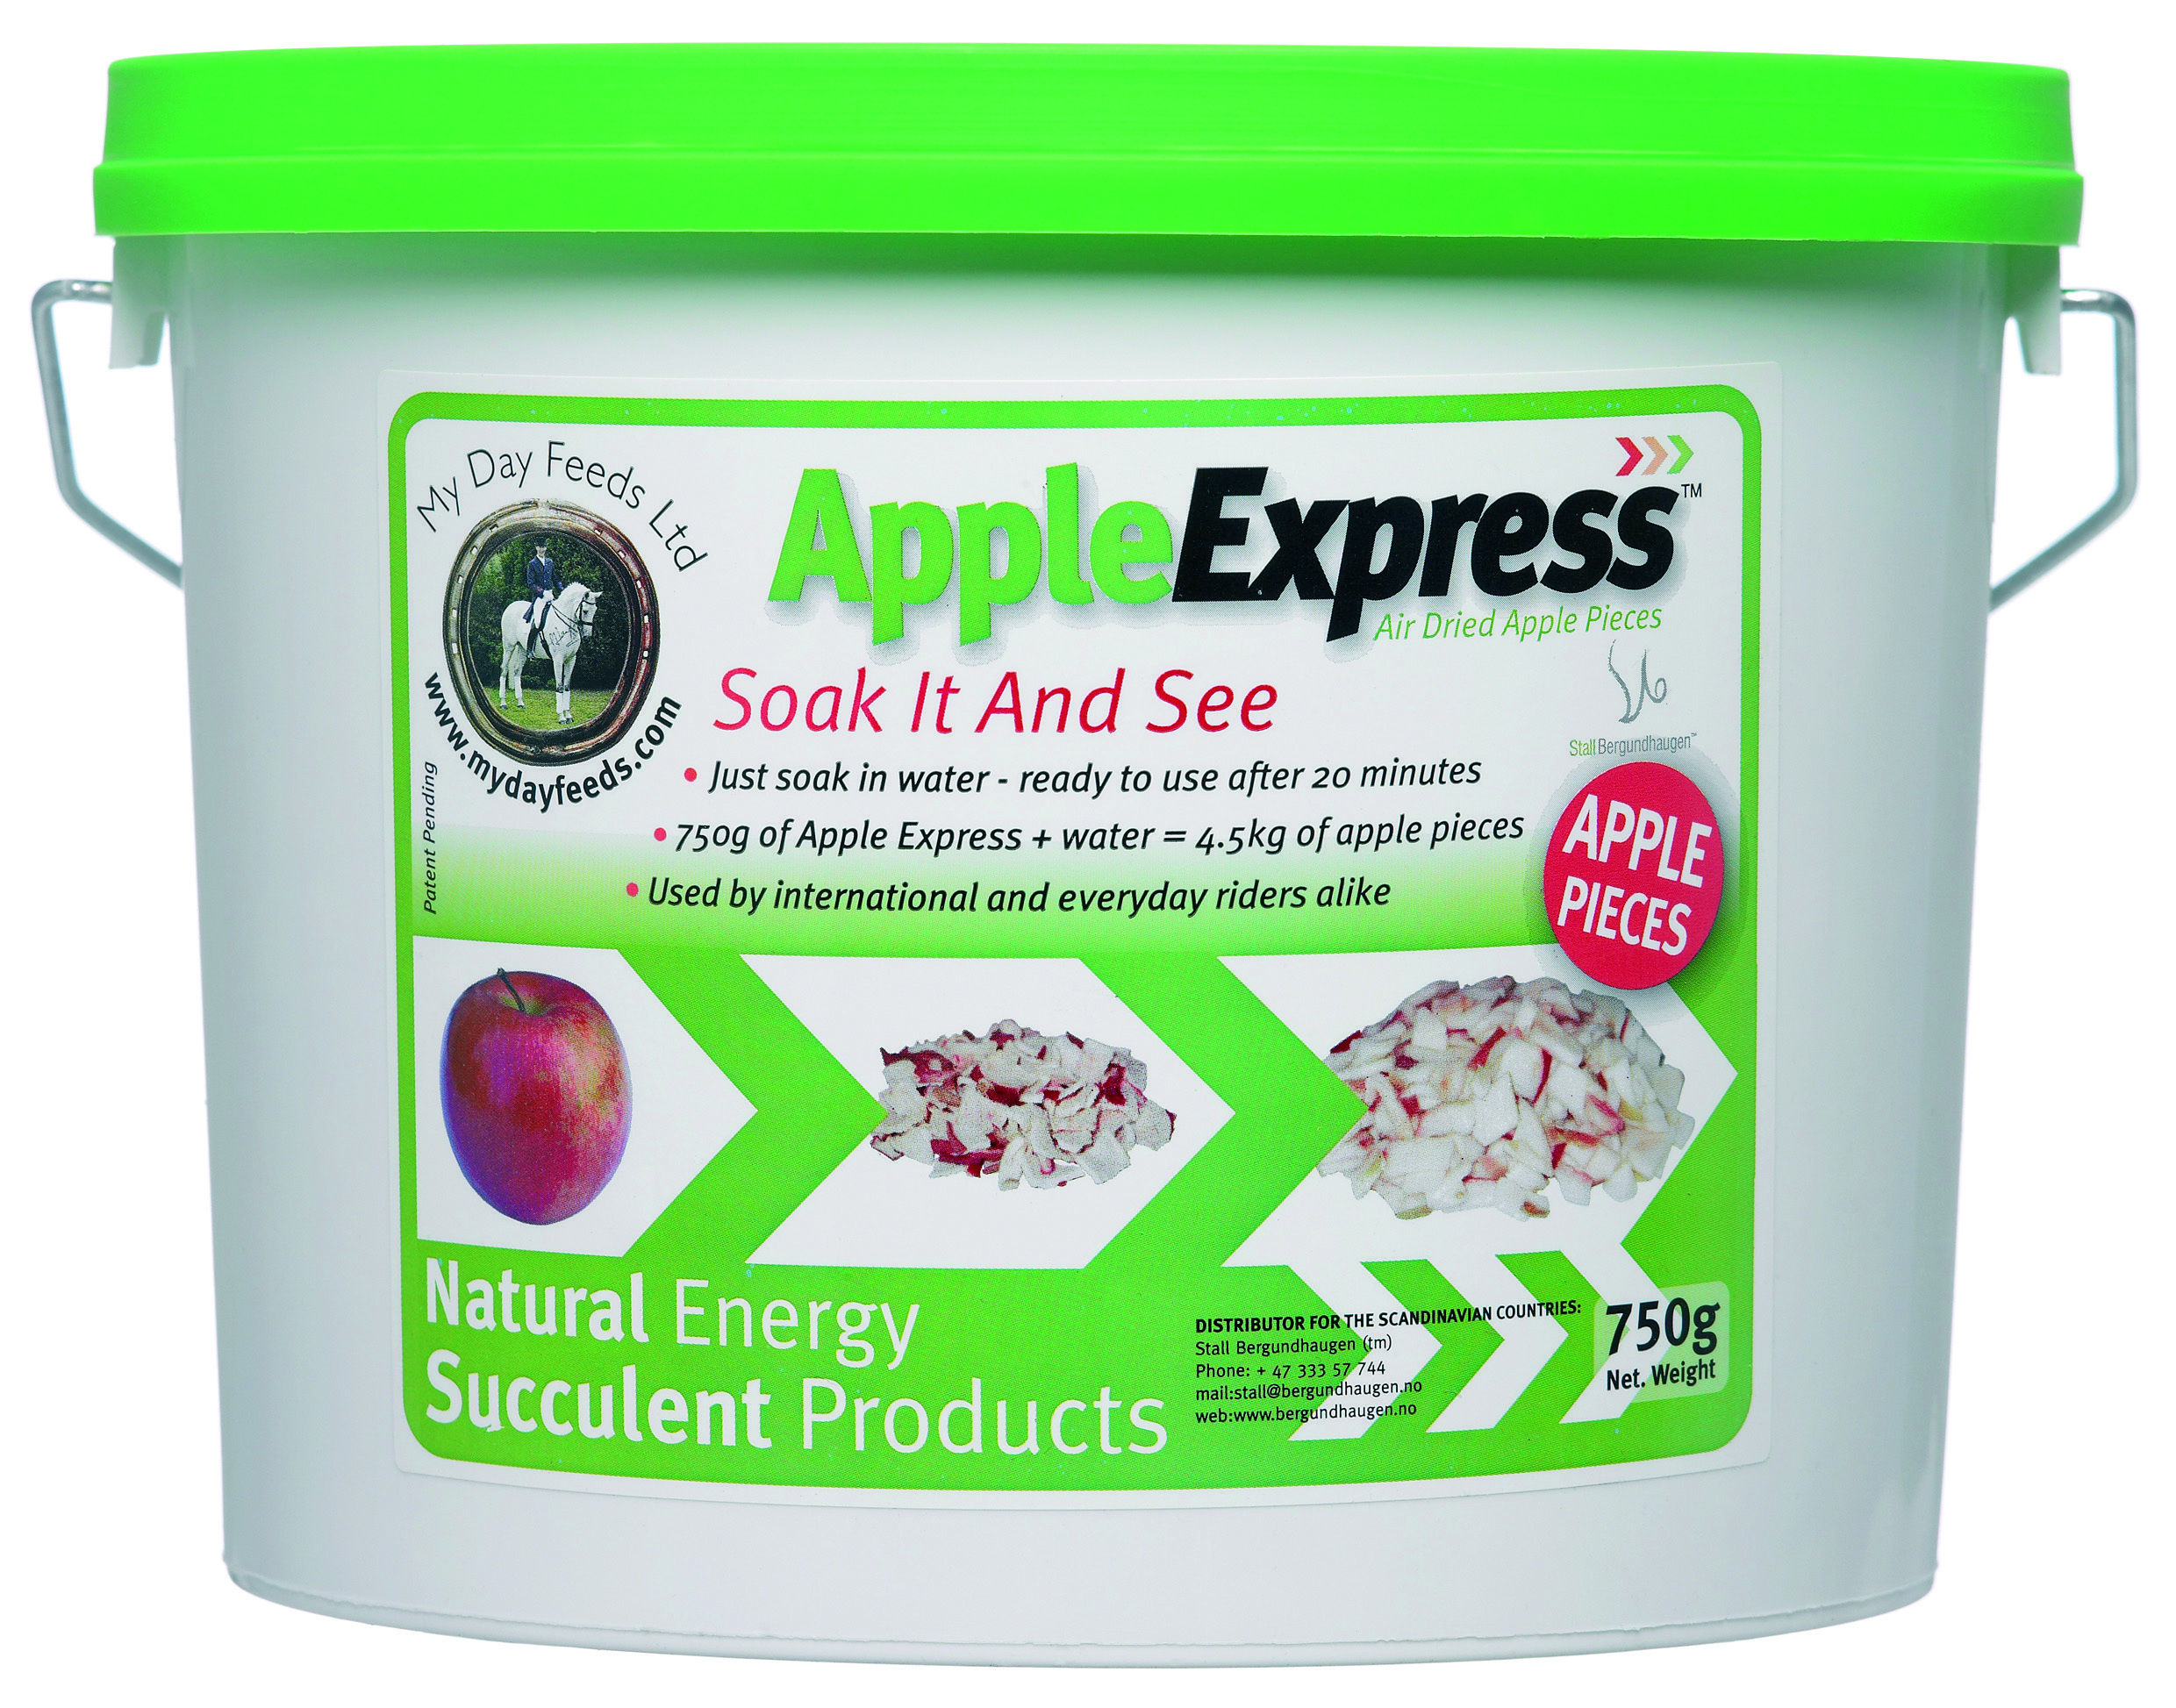 My Day Feeds Apple Express